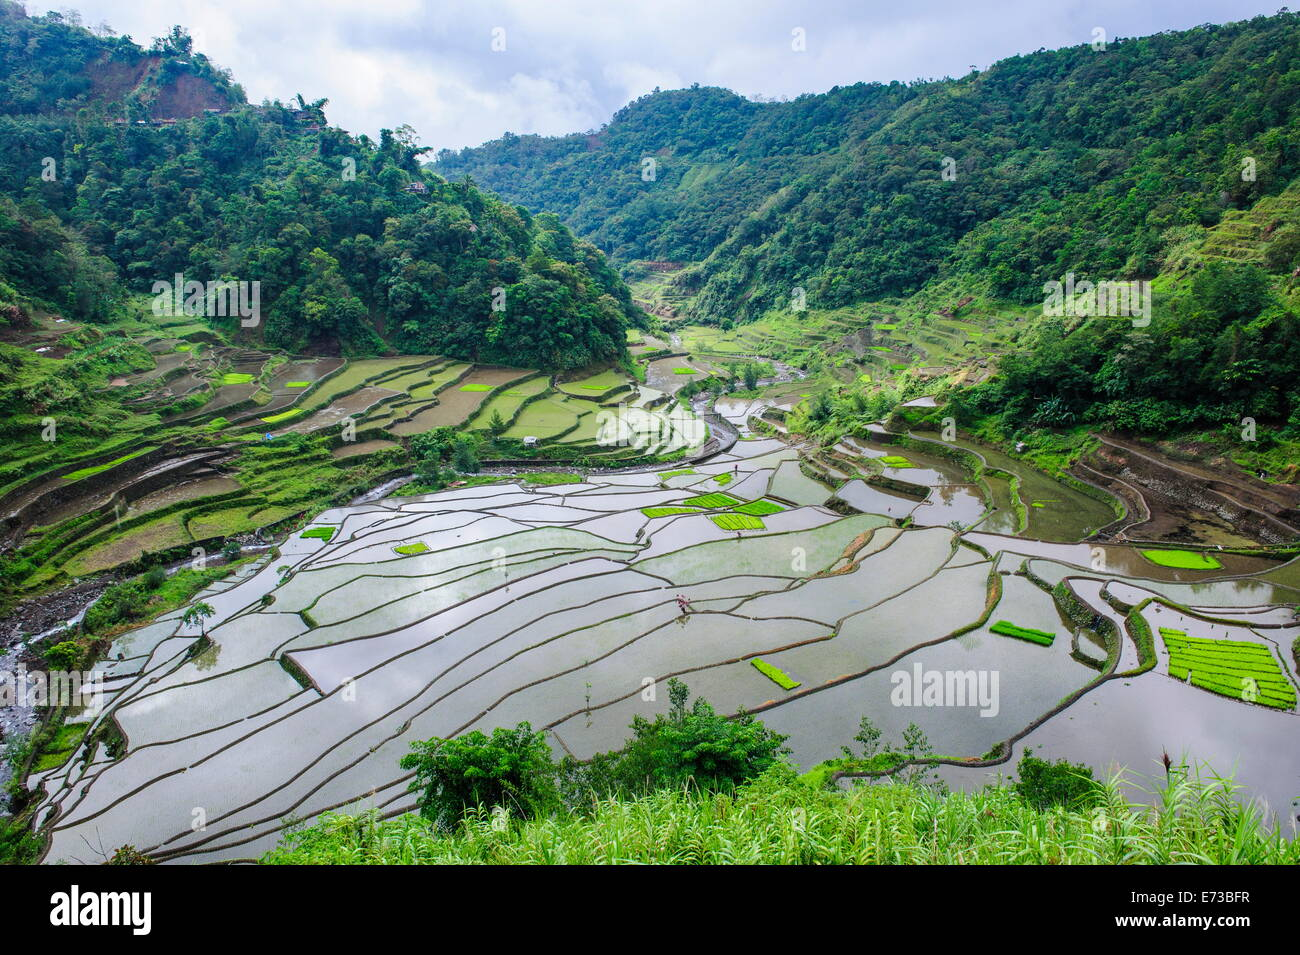 The rice terraces of Banaue, UNESCO World Heritage Site, Northern Luzon, Philippines, Southeast Asia, Asia - Stock Image